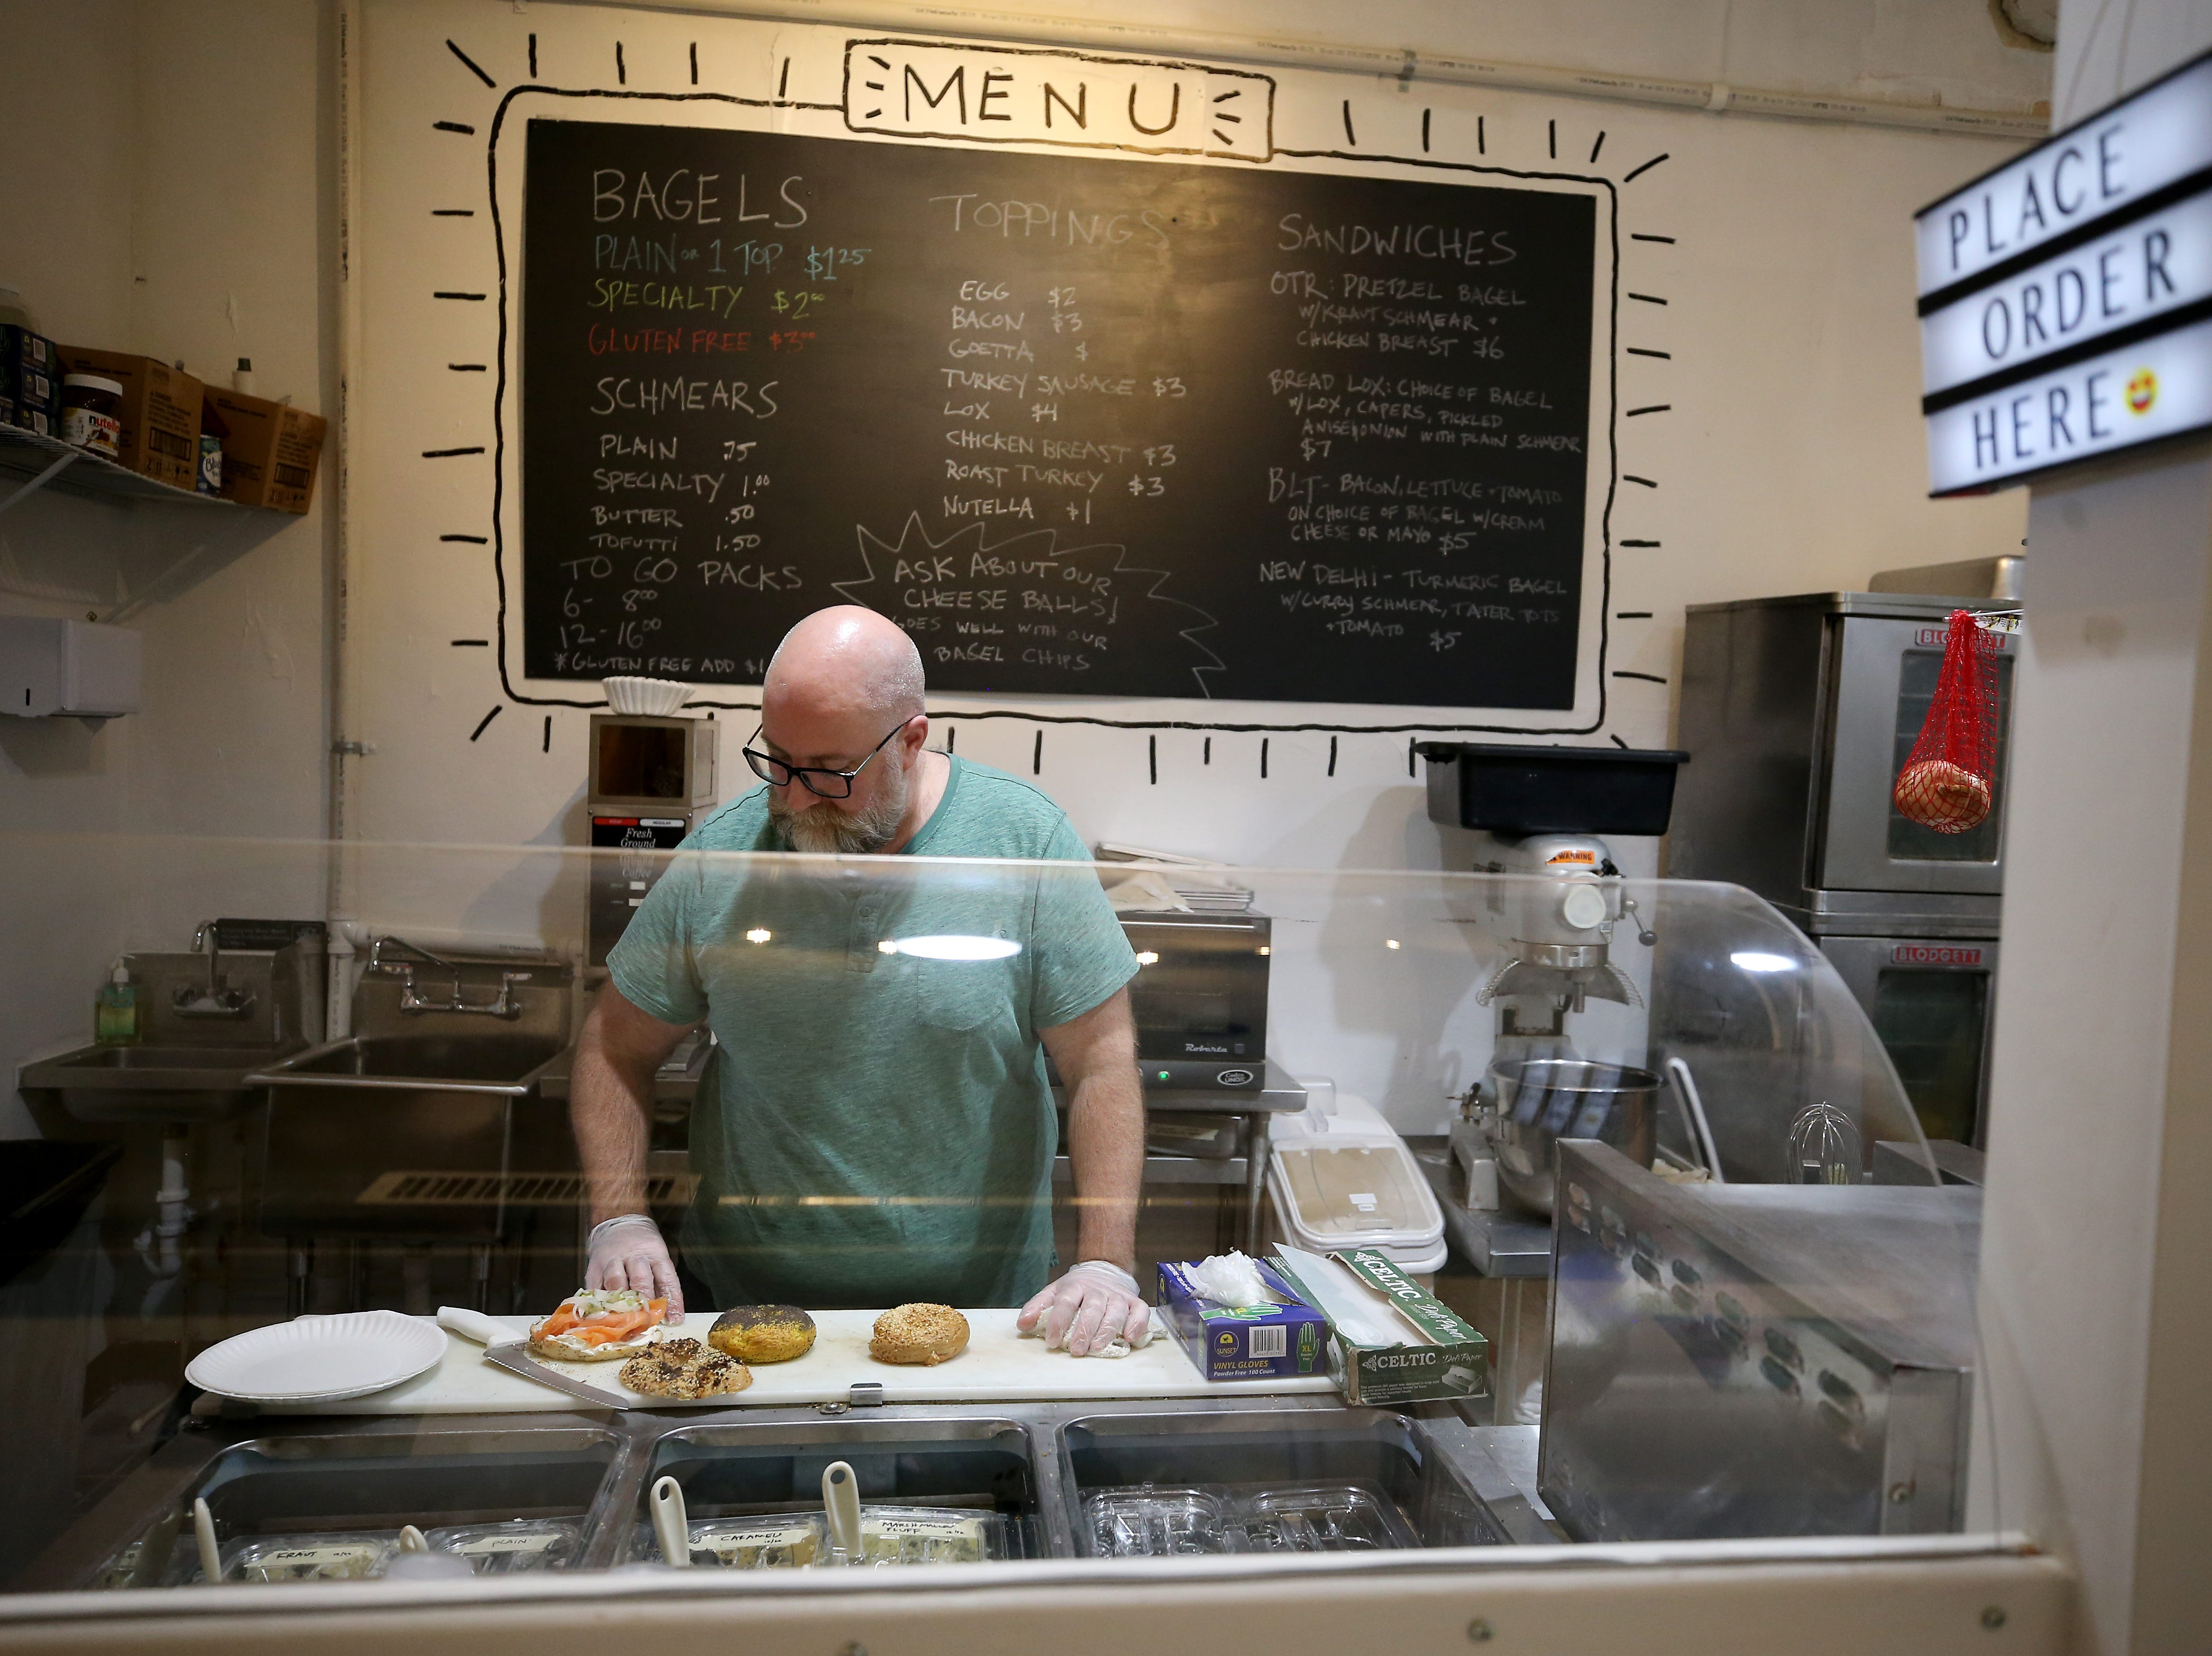 Marshall Mann, owner of OTR Bagel Bar, prepares bagels, pictured, Thursday, Jan. 3, 2019, at OTR Bagels located at Findlay Market in Cincinnati.